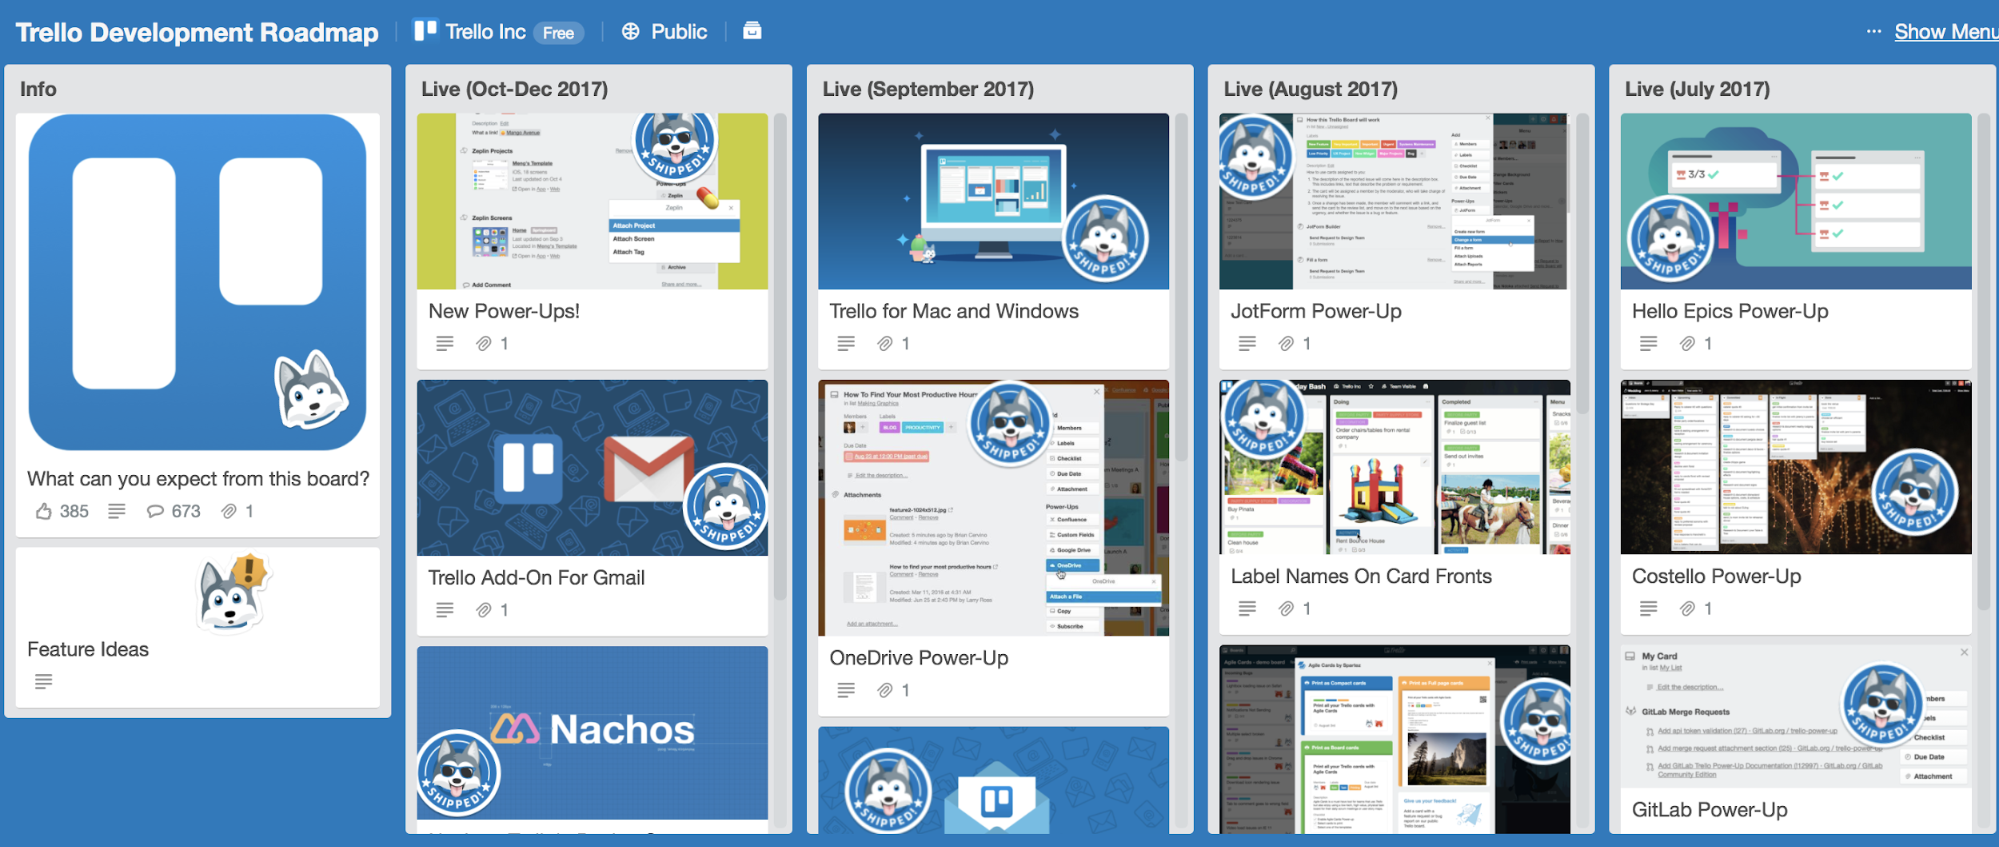 Trello public roadmap